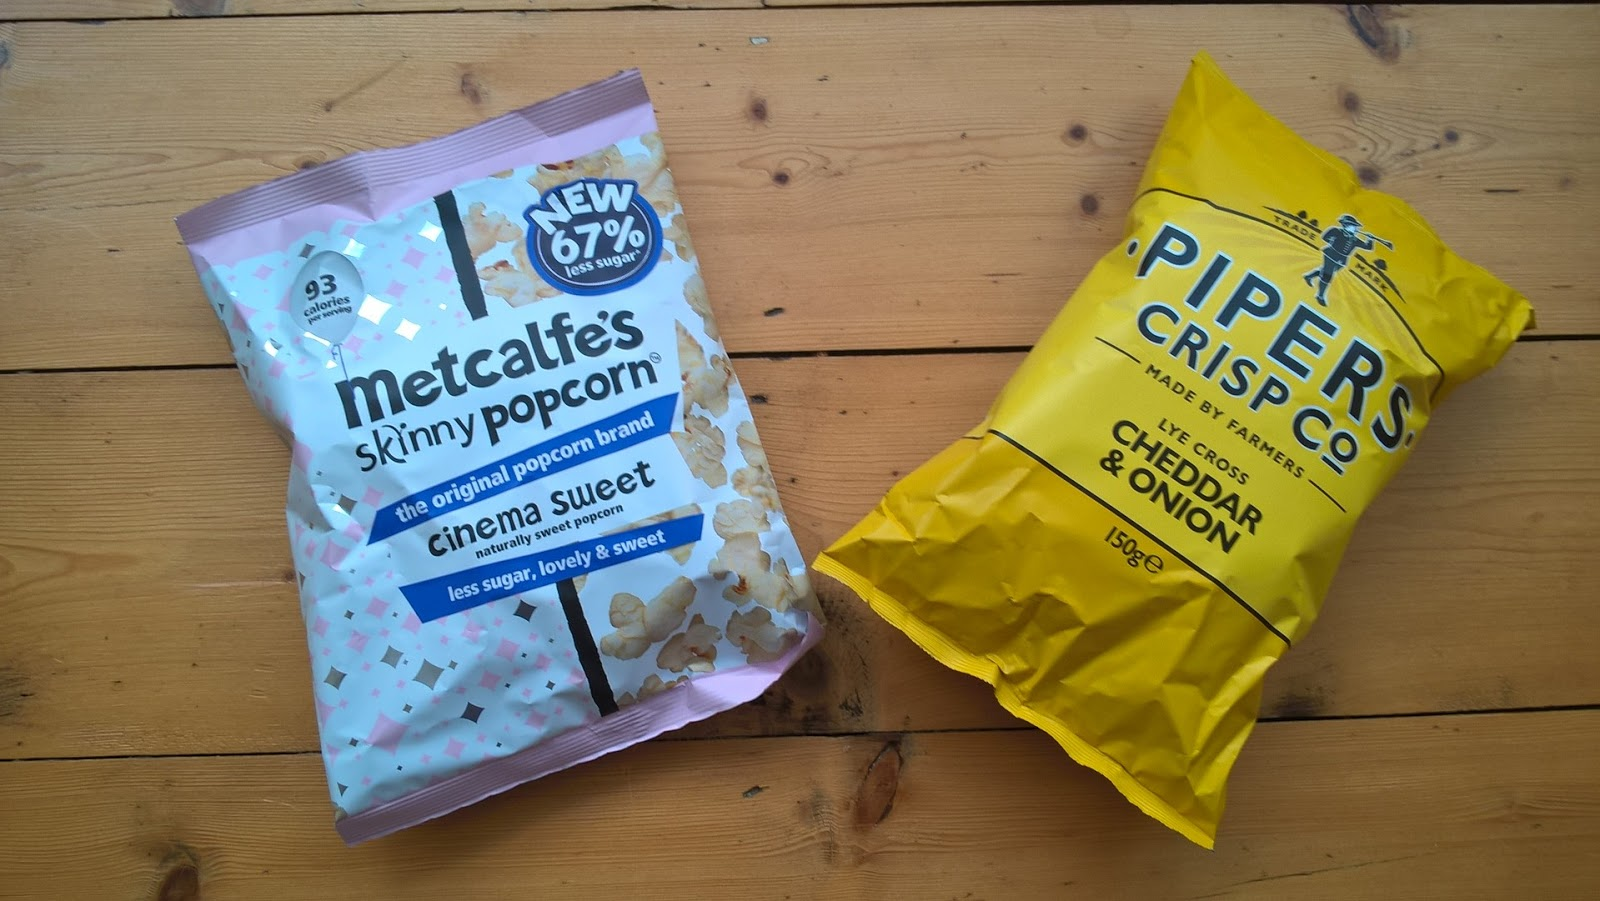 Metcalfe's Skinny Popcorn in Cinema Sweet, Pipers Cheddar & Onion Crisps - food subscription boxes - motherdistracted.co.uk